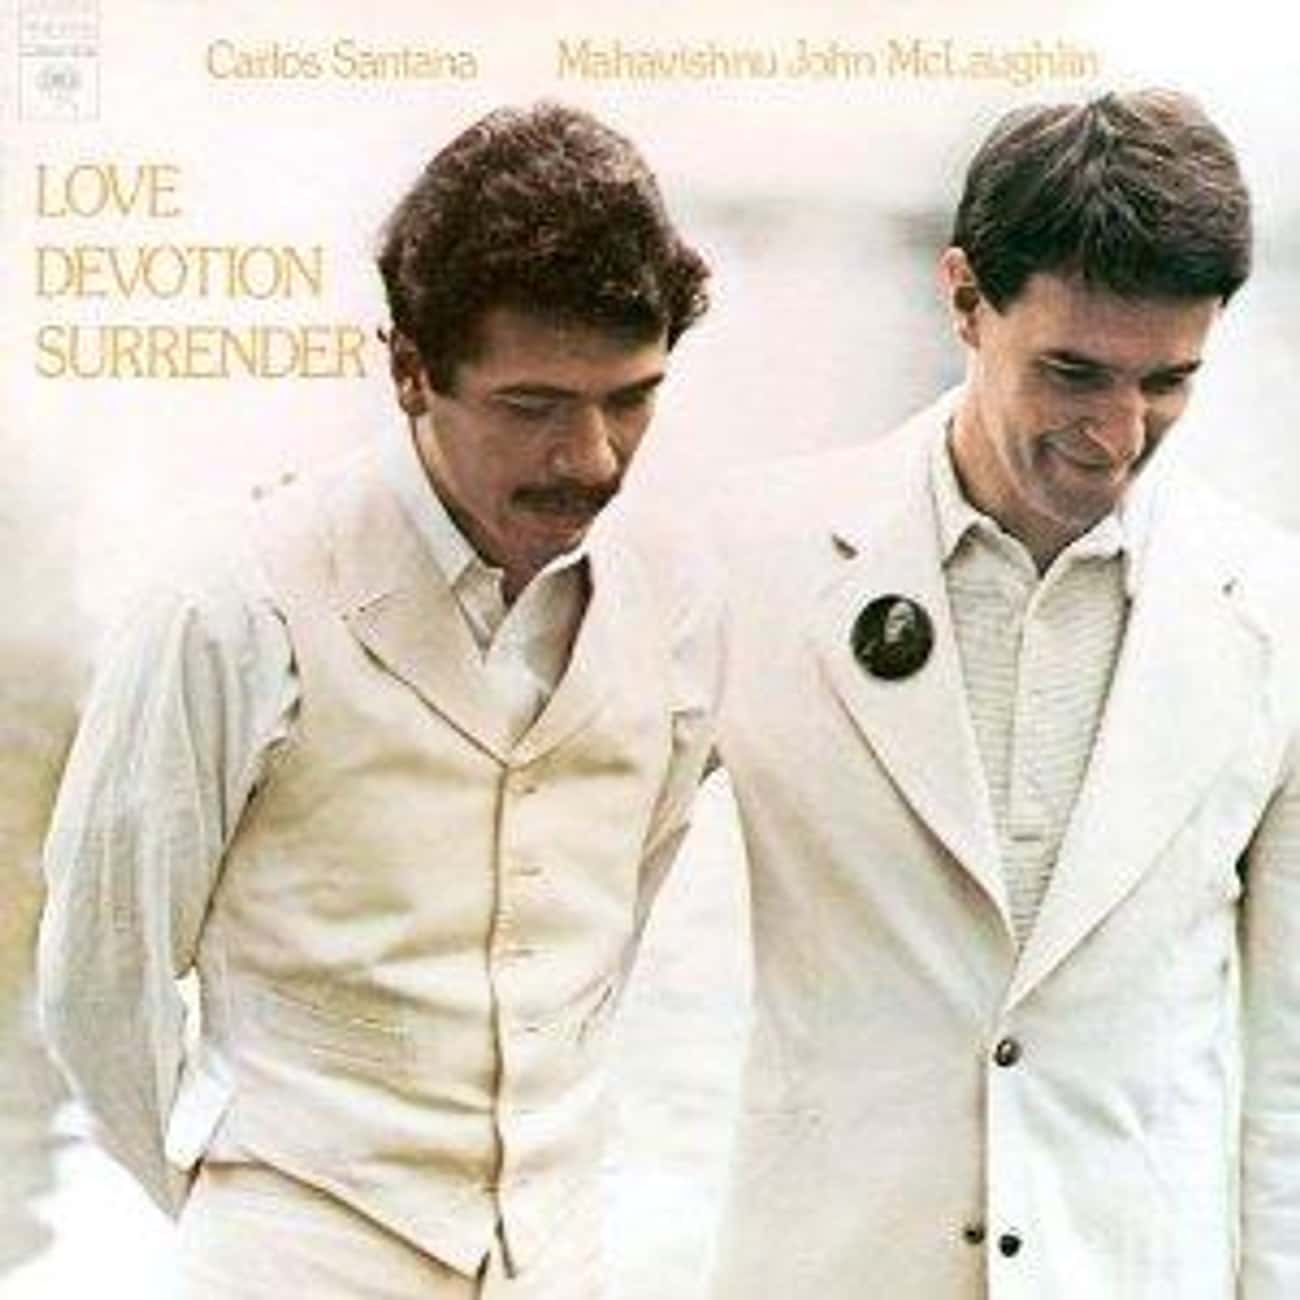 Love Devotion Surrender is listed (or ranked) 1 on the list The Best Carlos Santana Albums of All Time